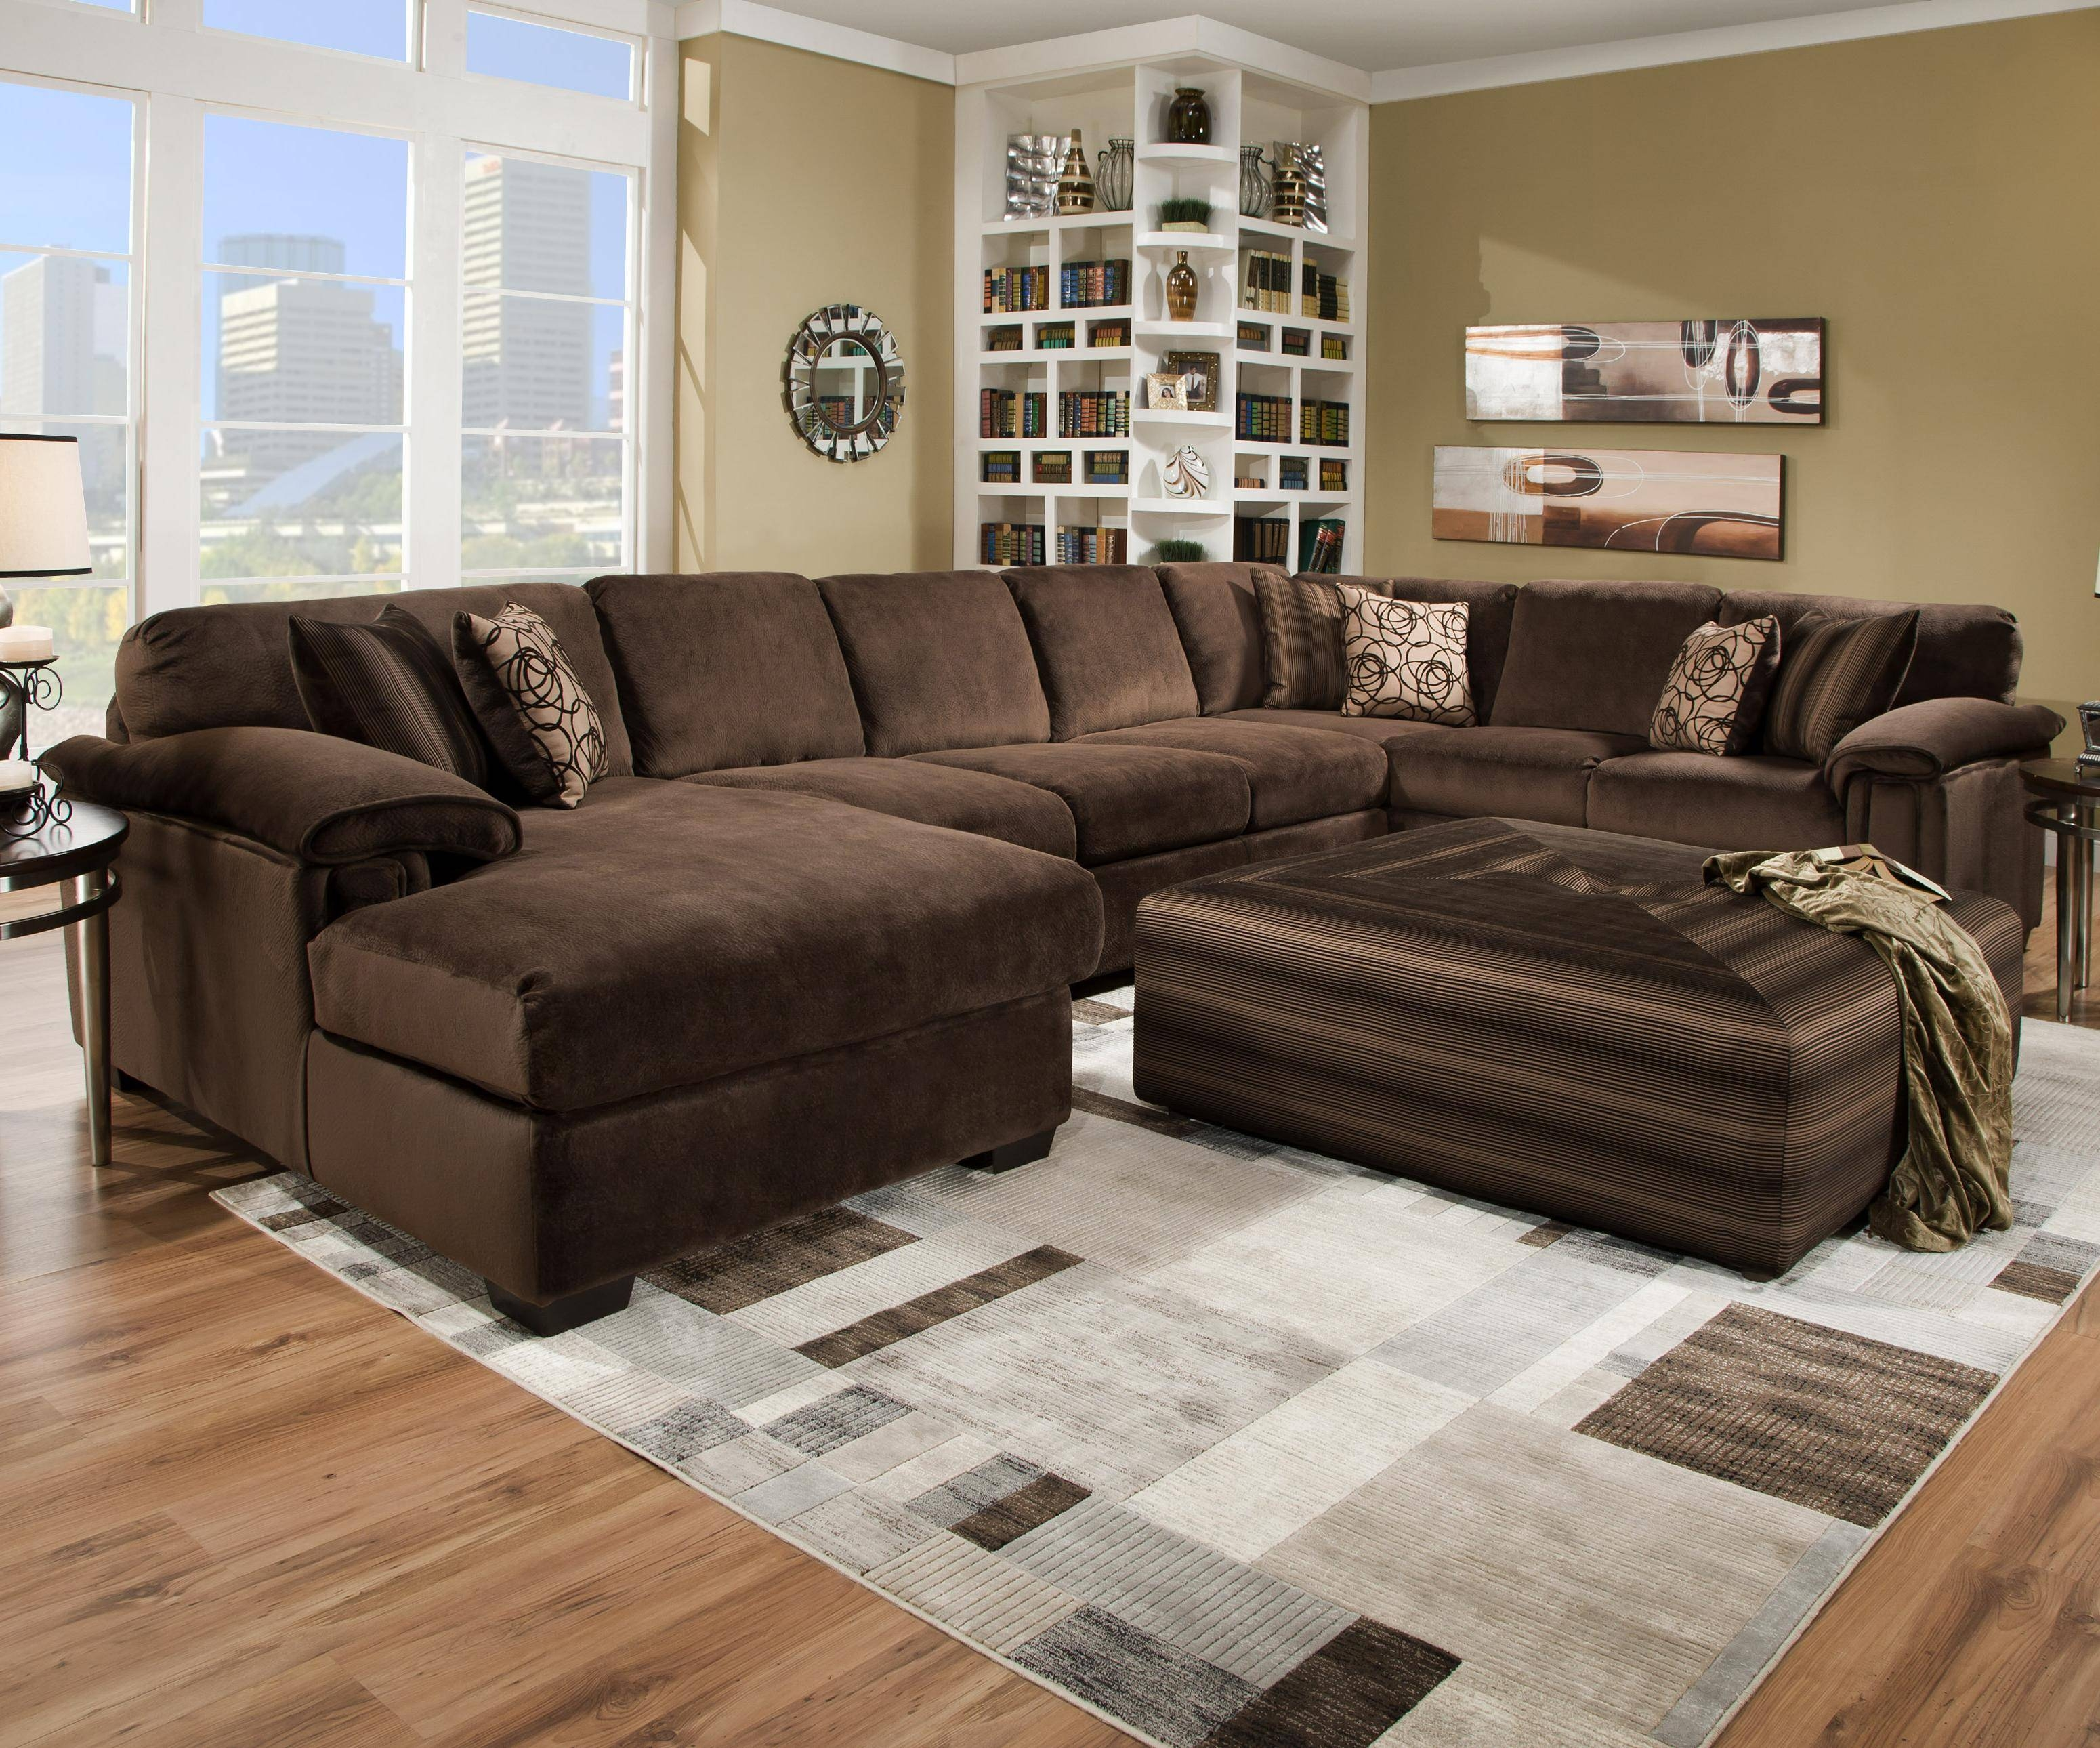 Furniture: Comfy Design Of Oversized Couch For Charming Living within Comfortable Sectional Sofa (Image 16 of 30)